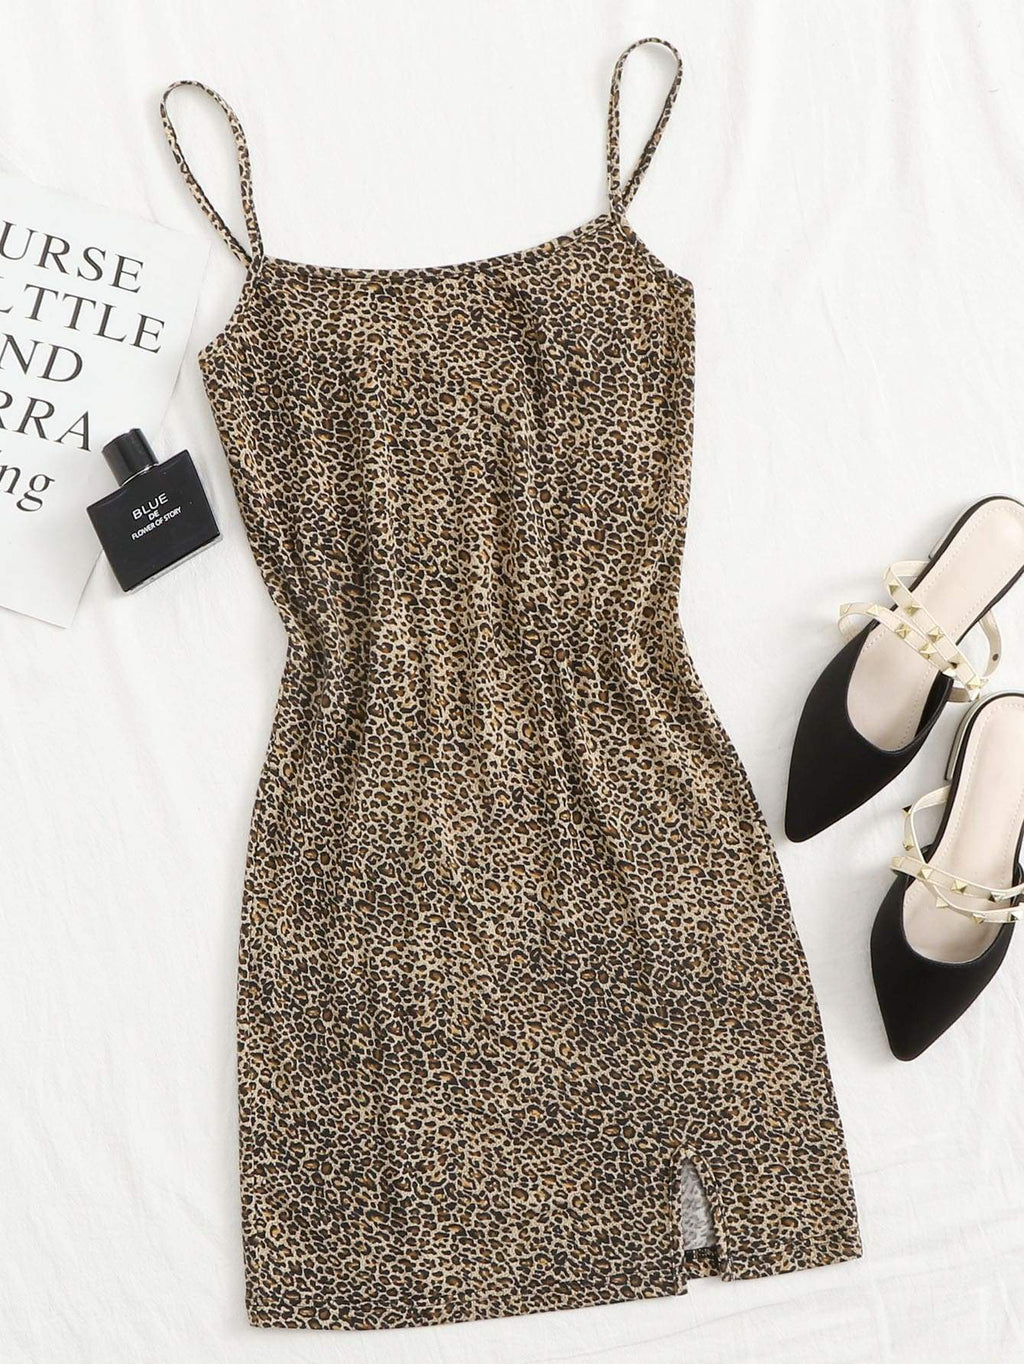 Plus Split Hem Leopard Print Bodycon Dress - INS | Online Fashion Free Shipping Clothing, Dresses, Tops, Shoes